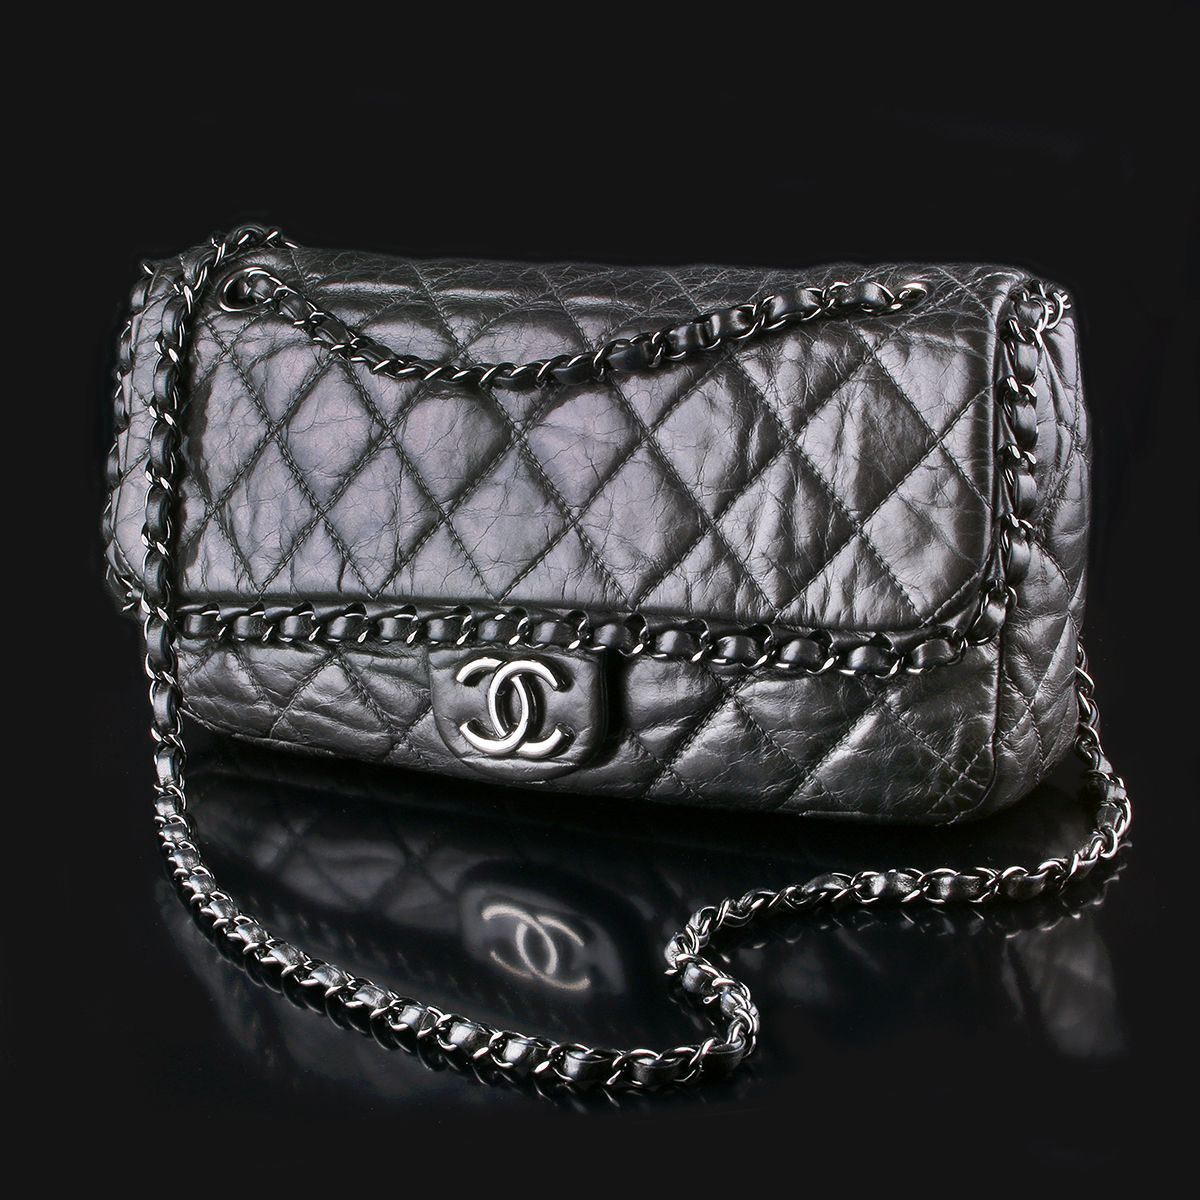 Second Hand Chanel Chain Around Cross Body Bag Anthracite Quilted Distressed Lambskin Sold Bags Luxury Bags Chanel Chain